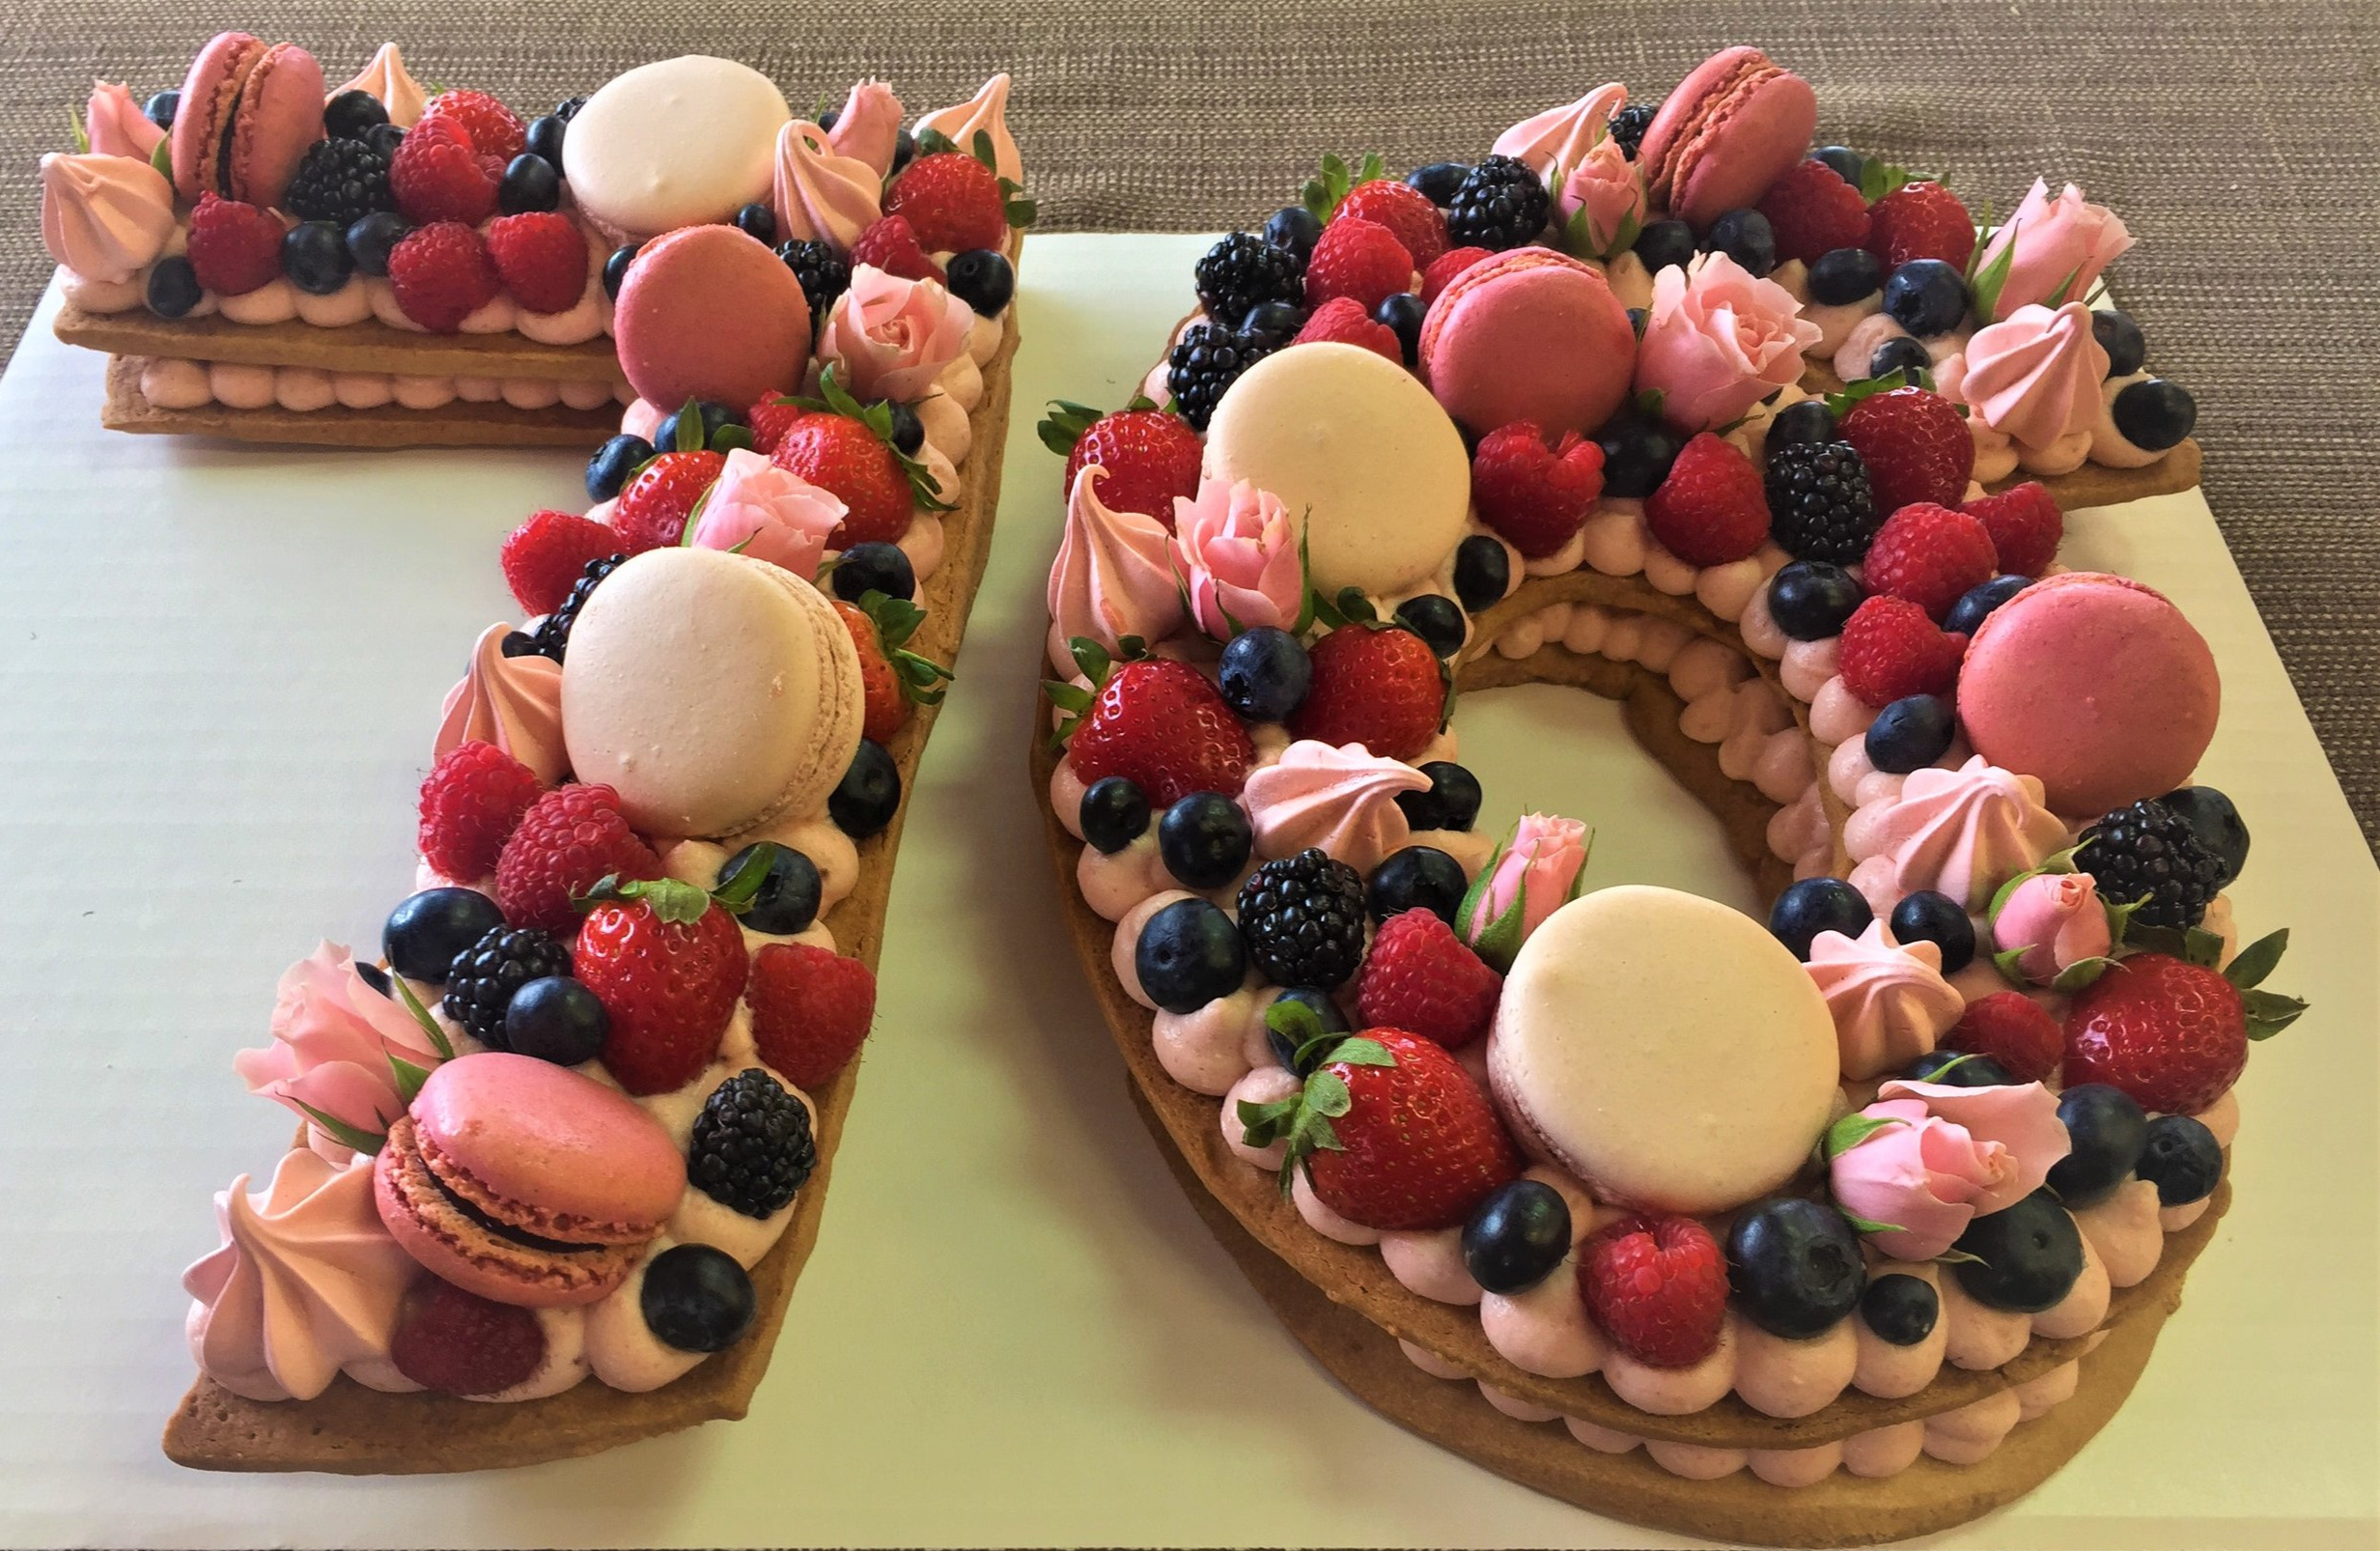 Call now to order our ultra trendy French Number Cakes! (757) 271-9220